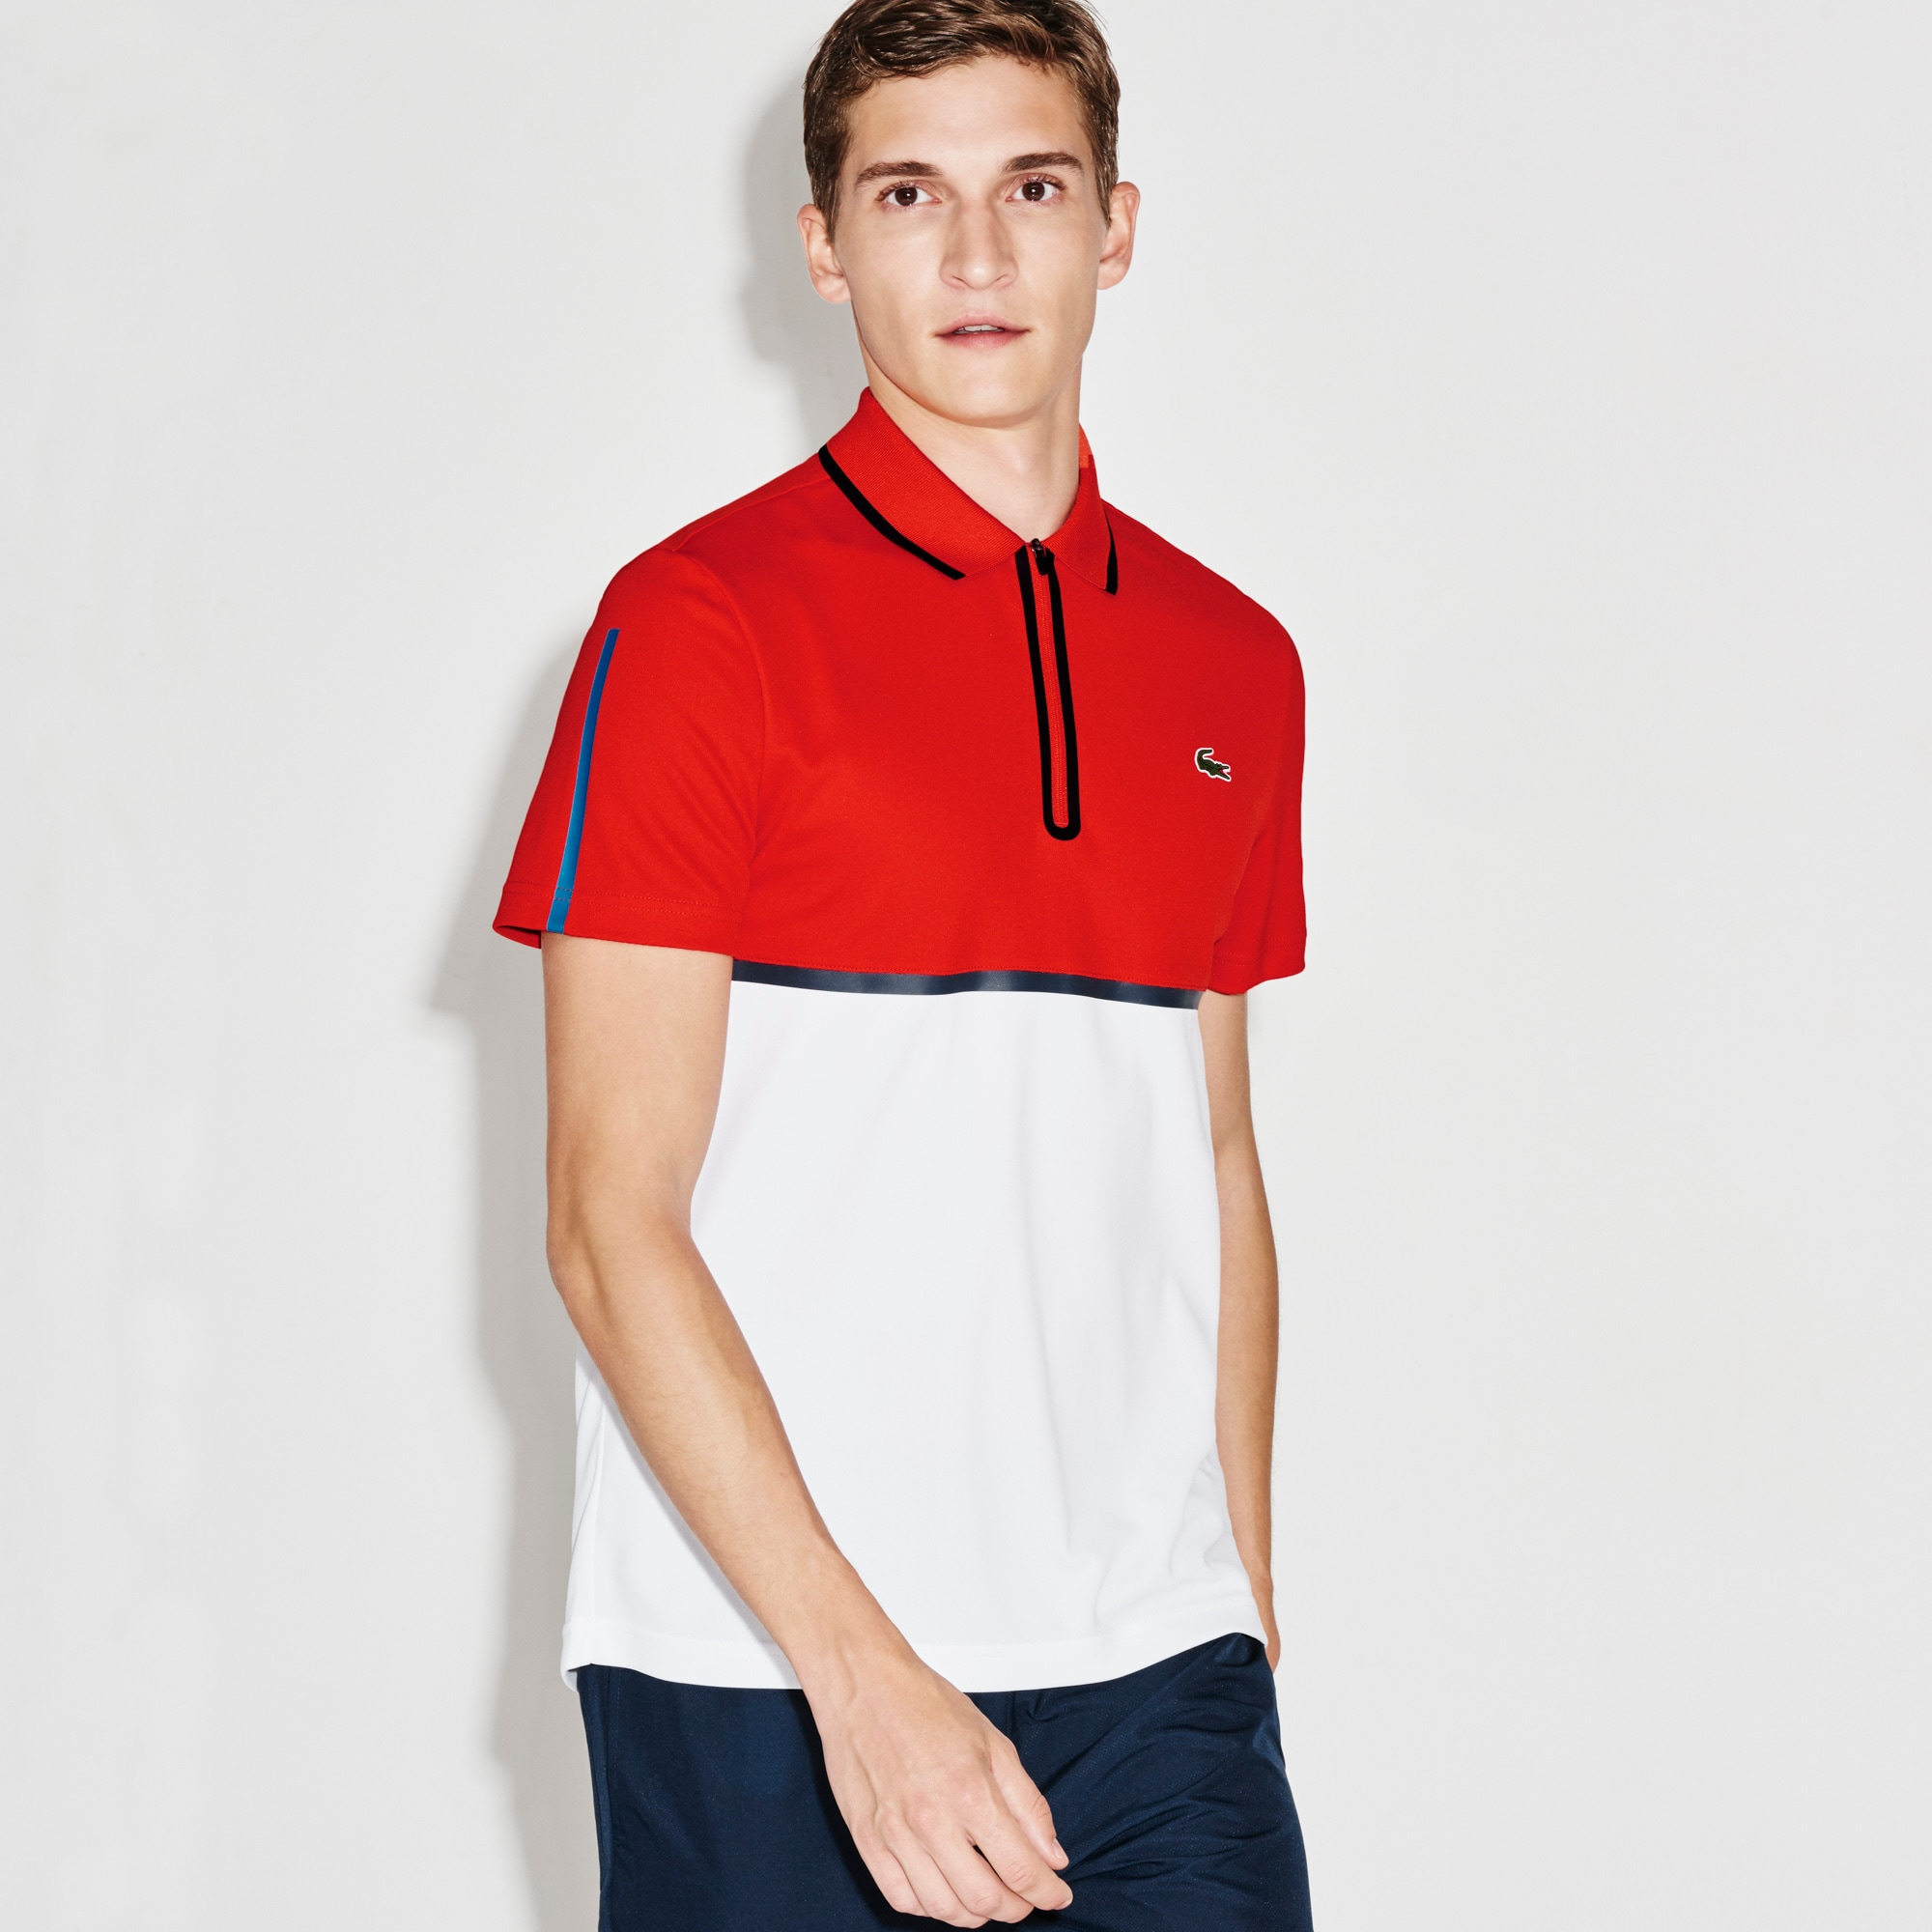 Men's SPORT Ultra Dry Zip Pique Knit Tennis Polo Shirt